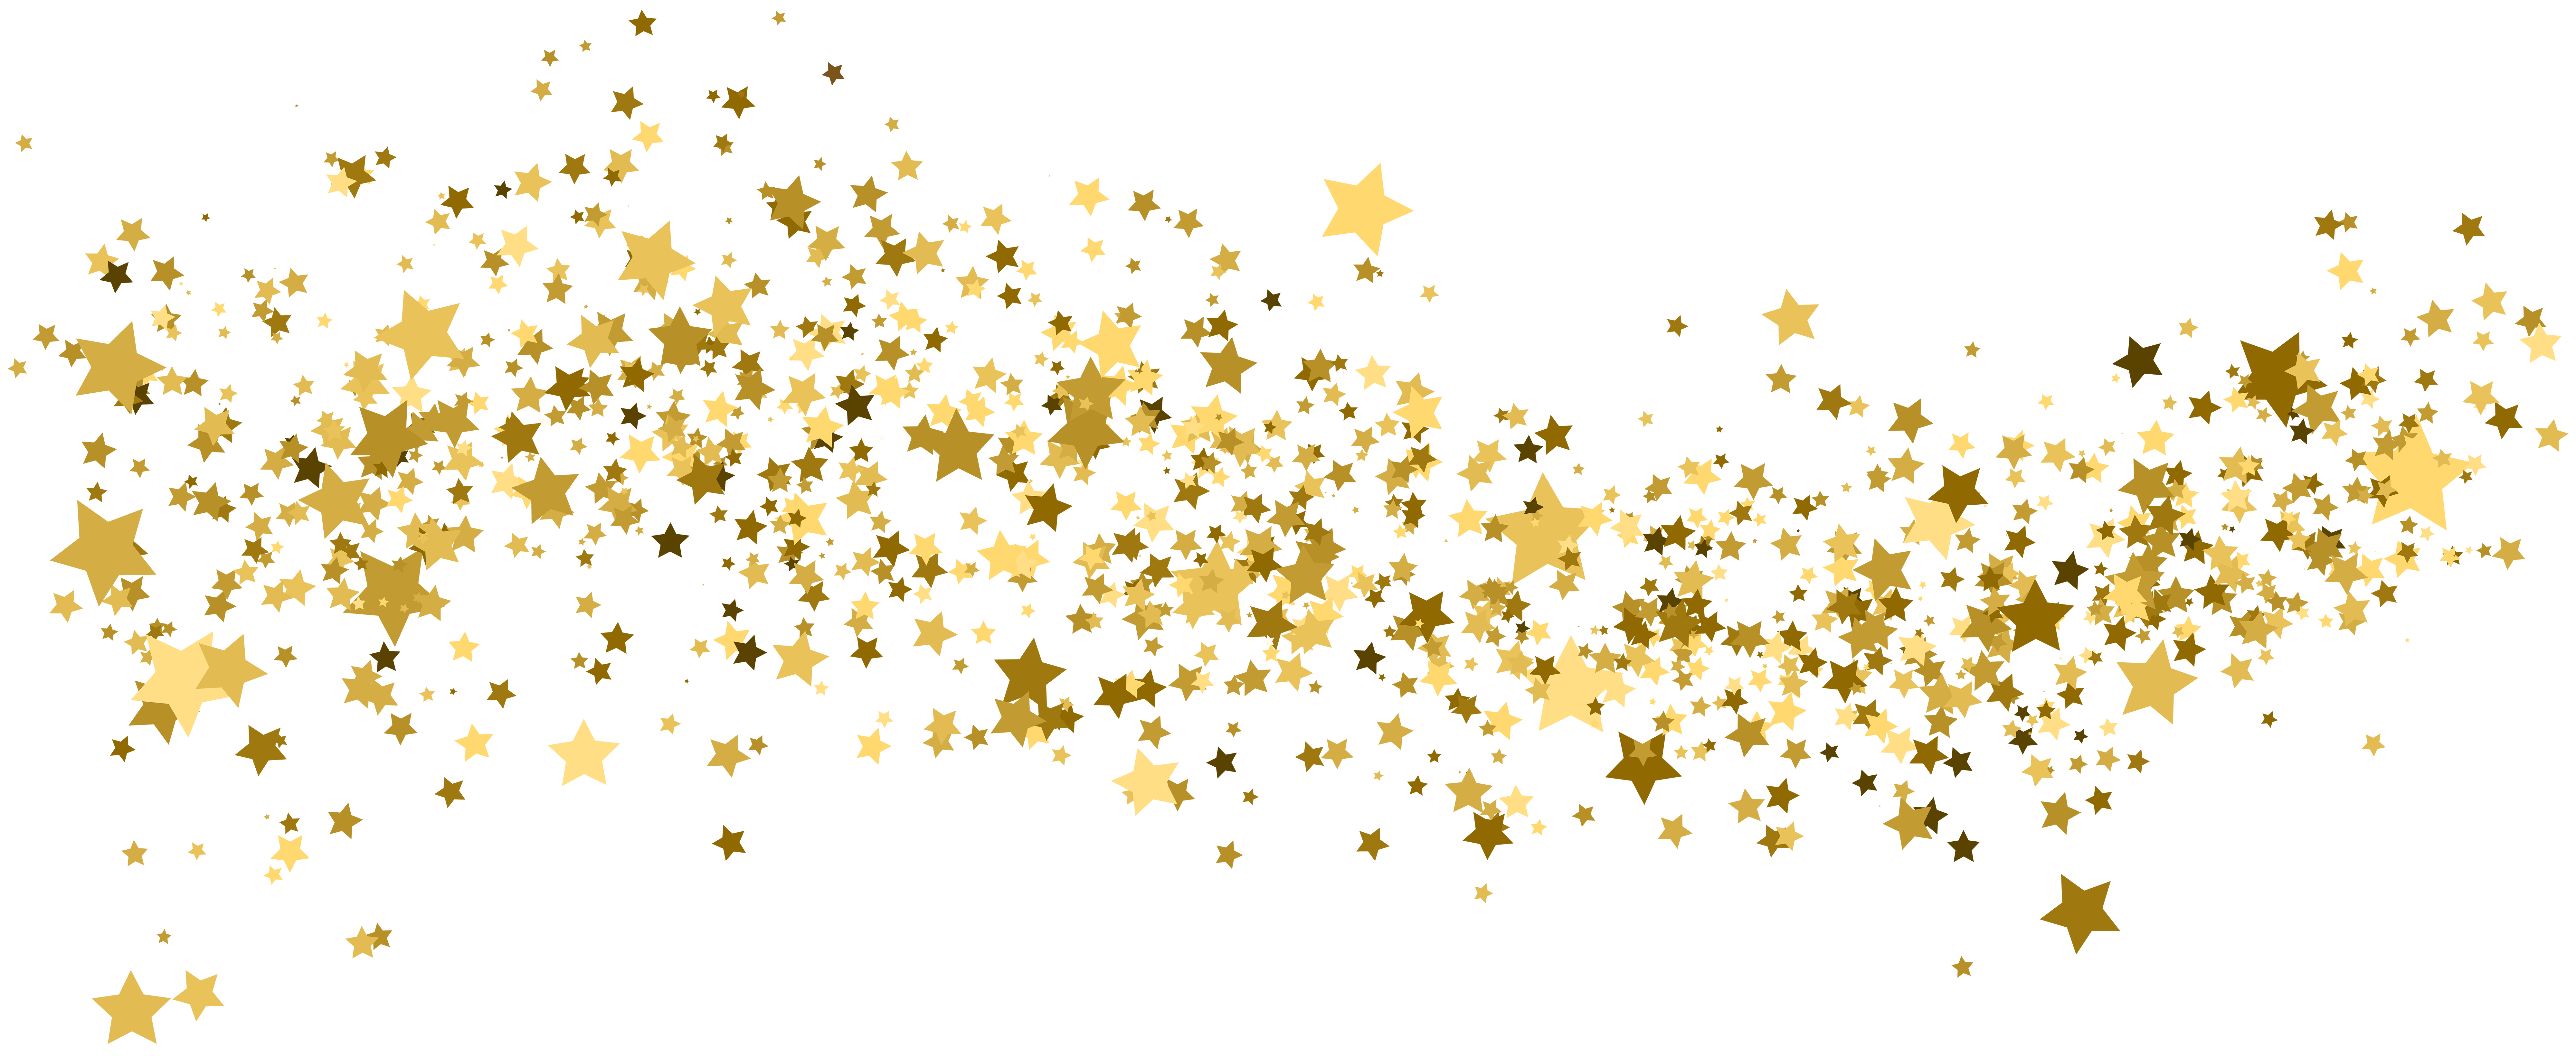 Deco Stars Transparent Clip Art Image Gallery Yopriceville High Quality Images And Transparent Png Free Clipart Clip Art Star Clipart Art Images